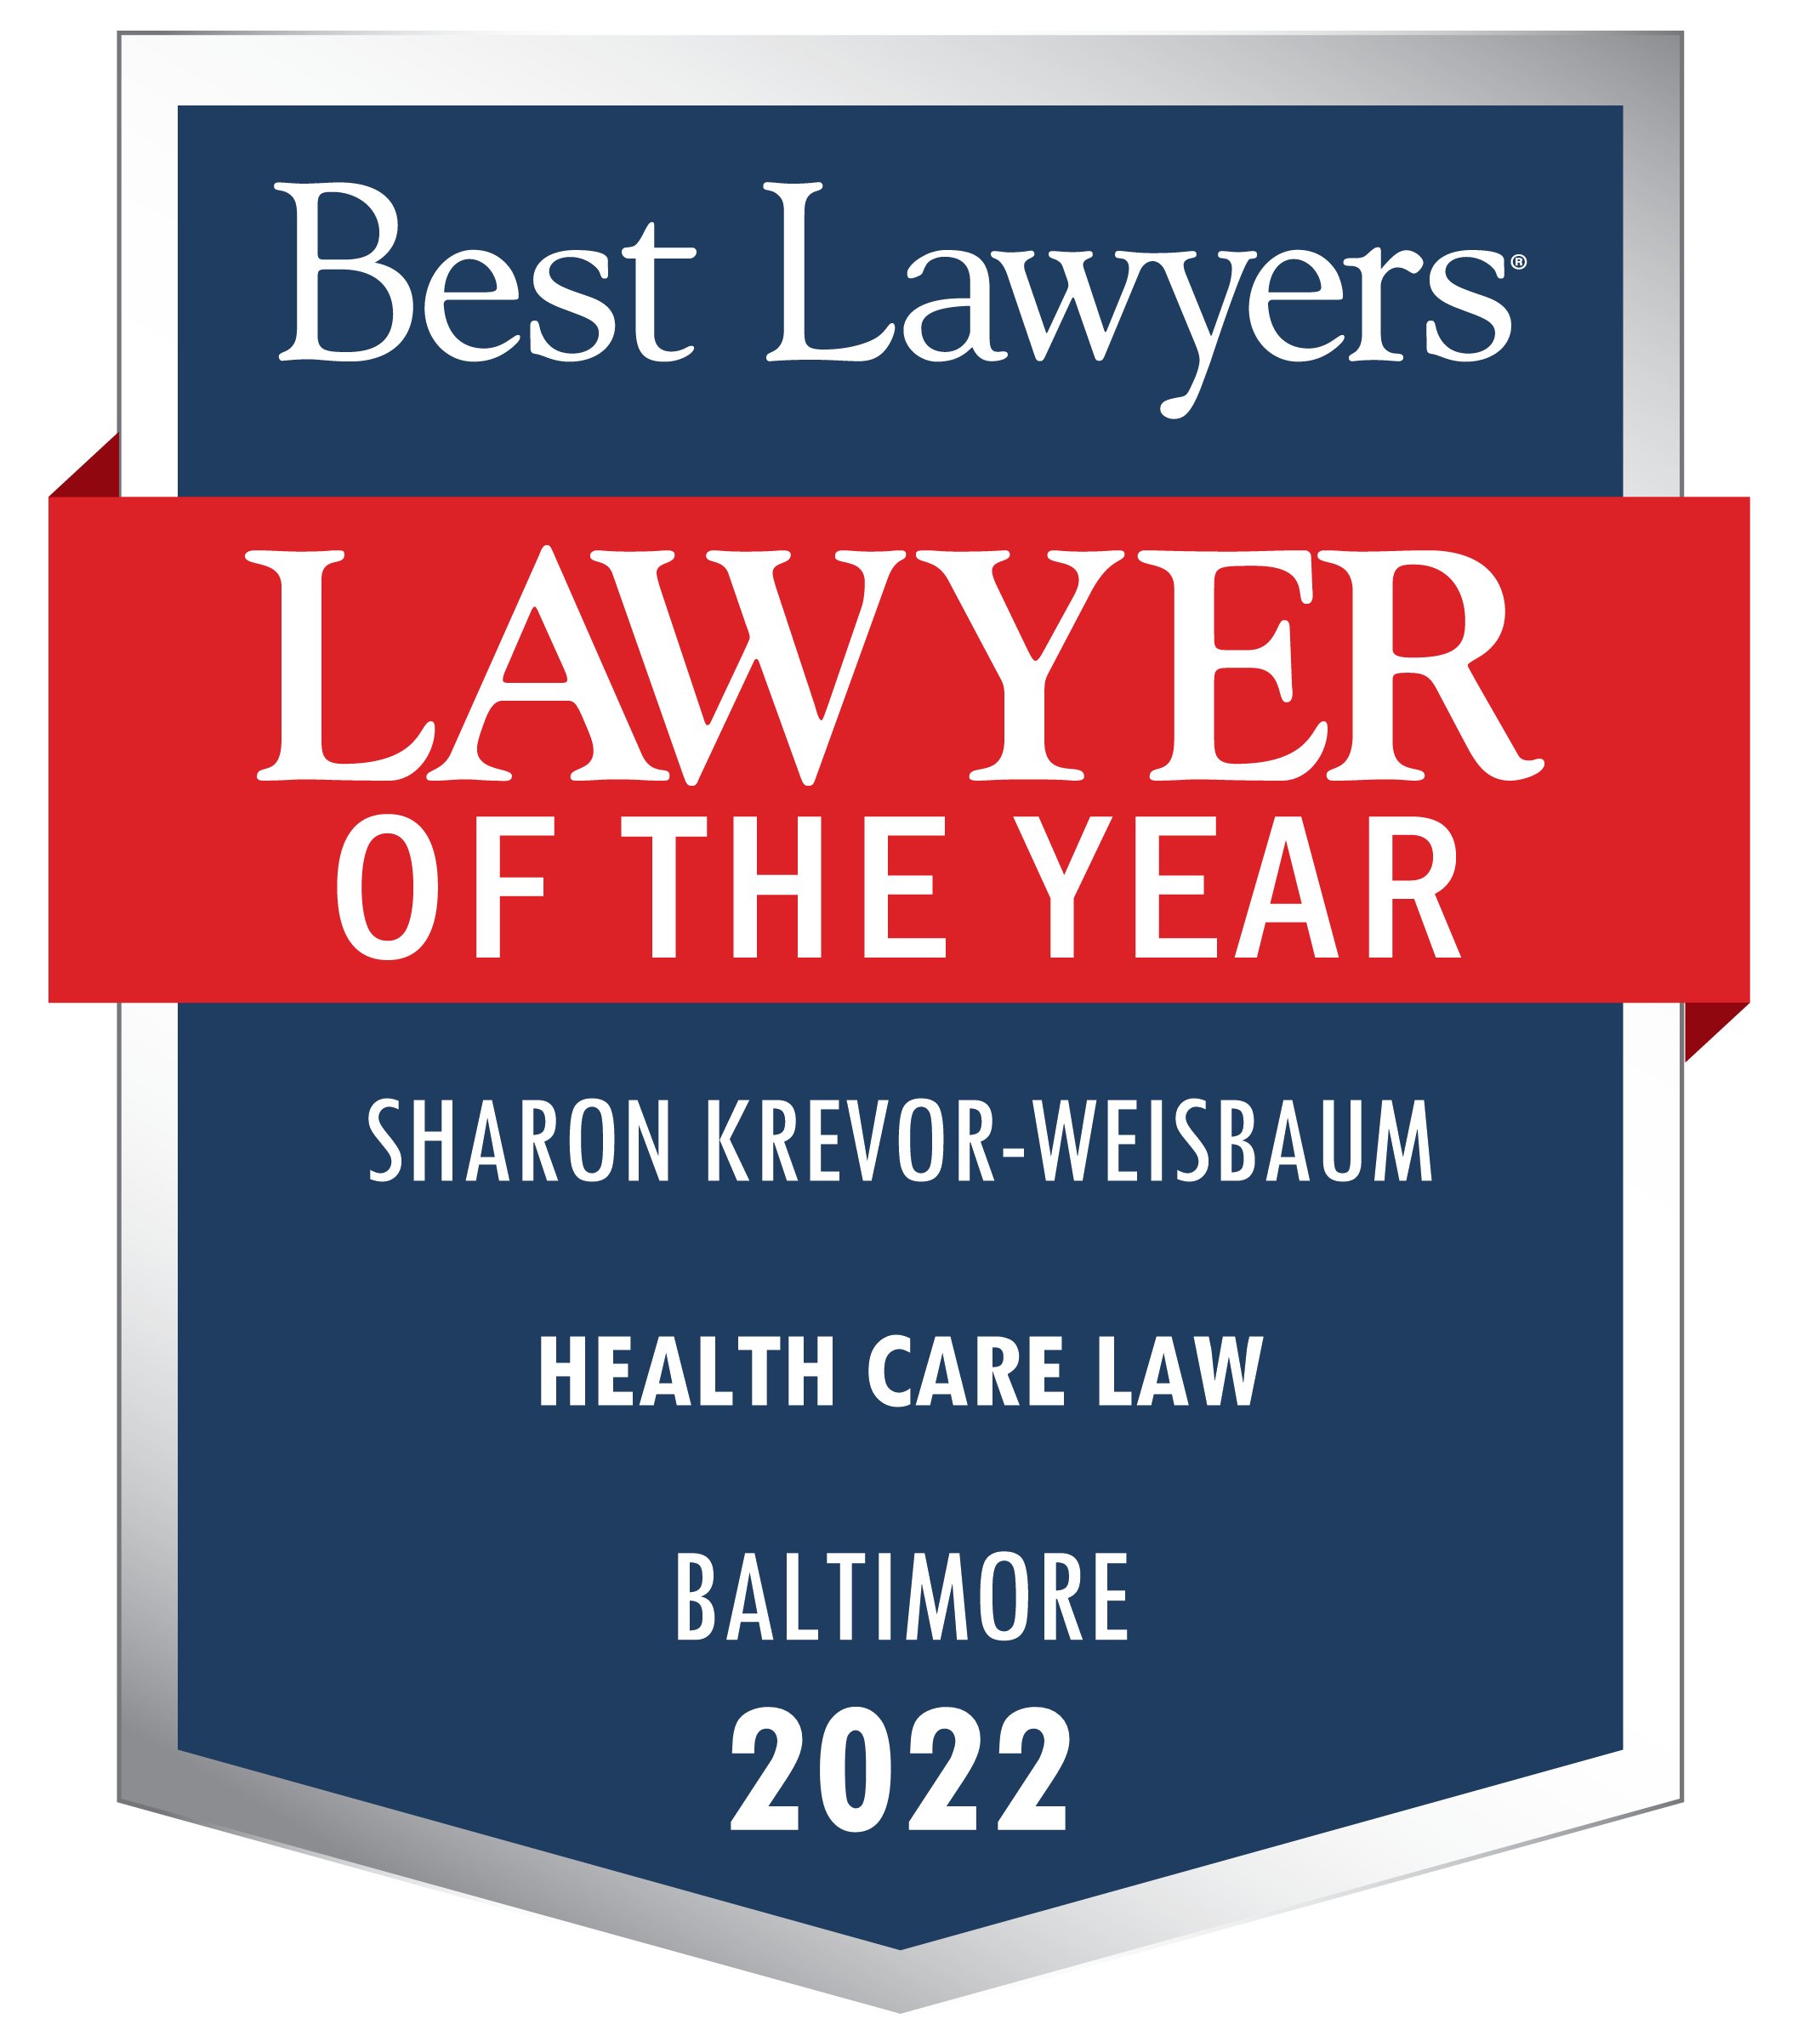 Best Lawyers Lawyer of the Year, Sharon Krevor-Weisbaum, Health Care Law, Baltimore, 2022